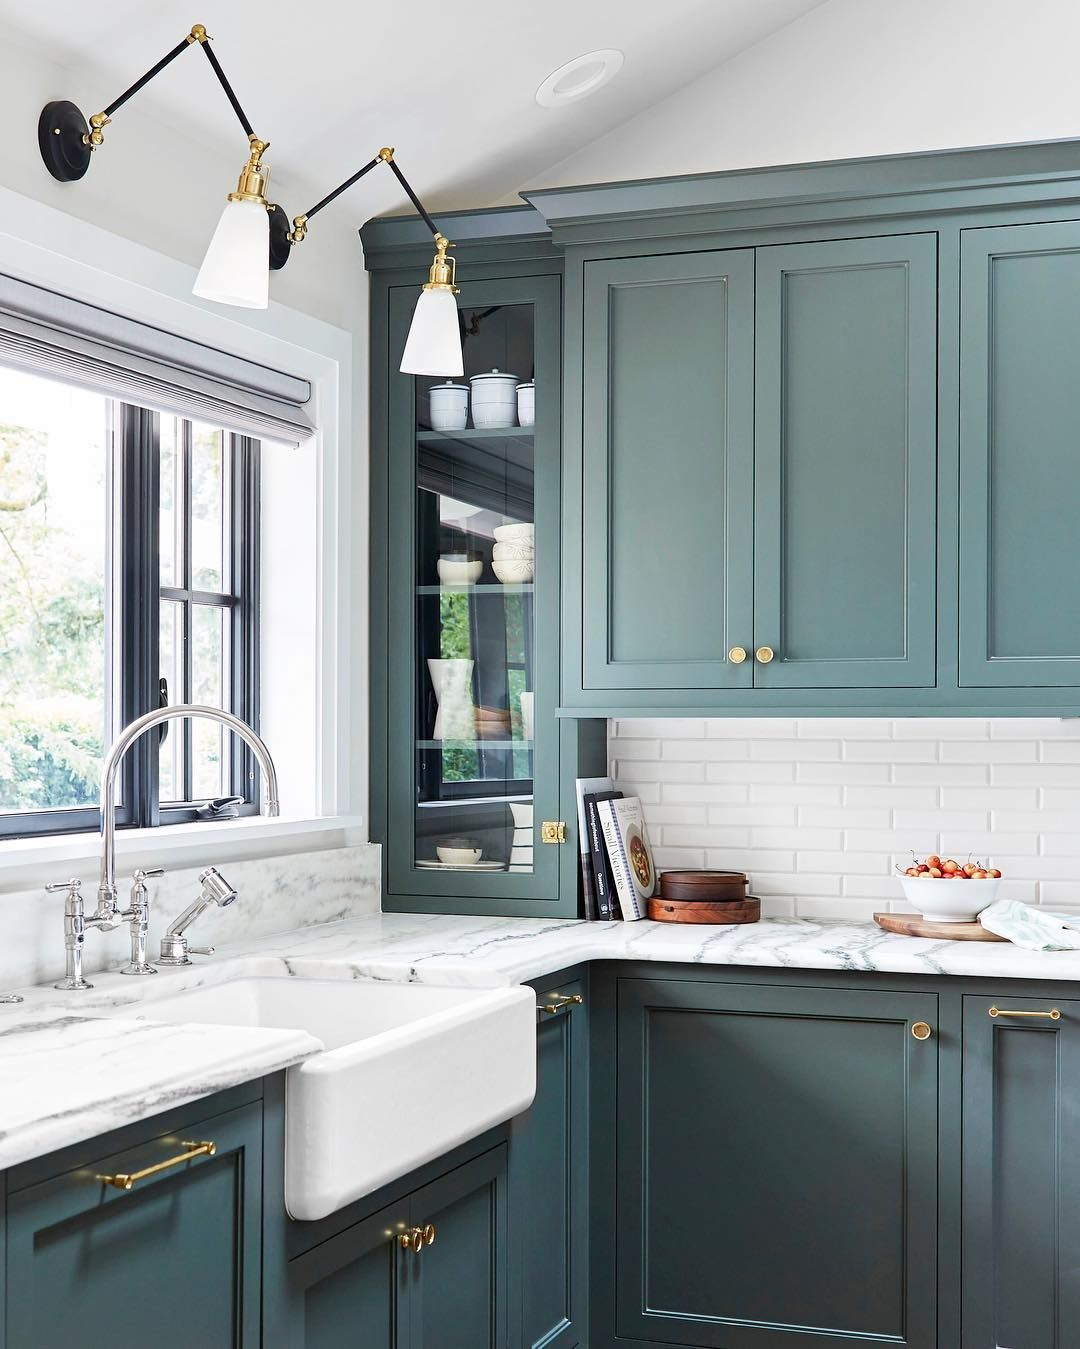 Rejuvenation On Instagram Task Lighting Above The Sink A Mix Of Finishes Marble Countertops Bold Cabi Kitchen Color Trends Kitchen Design Kitchen Interior